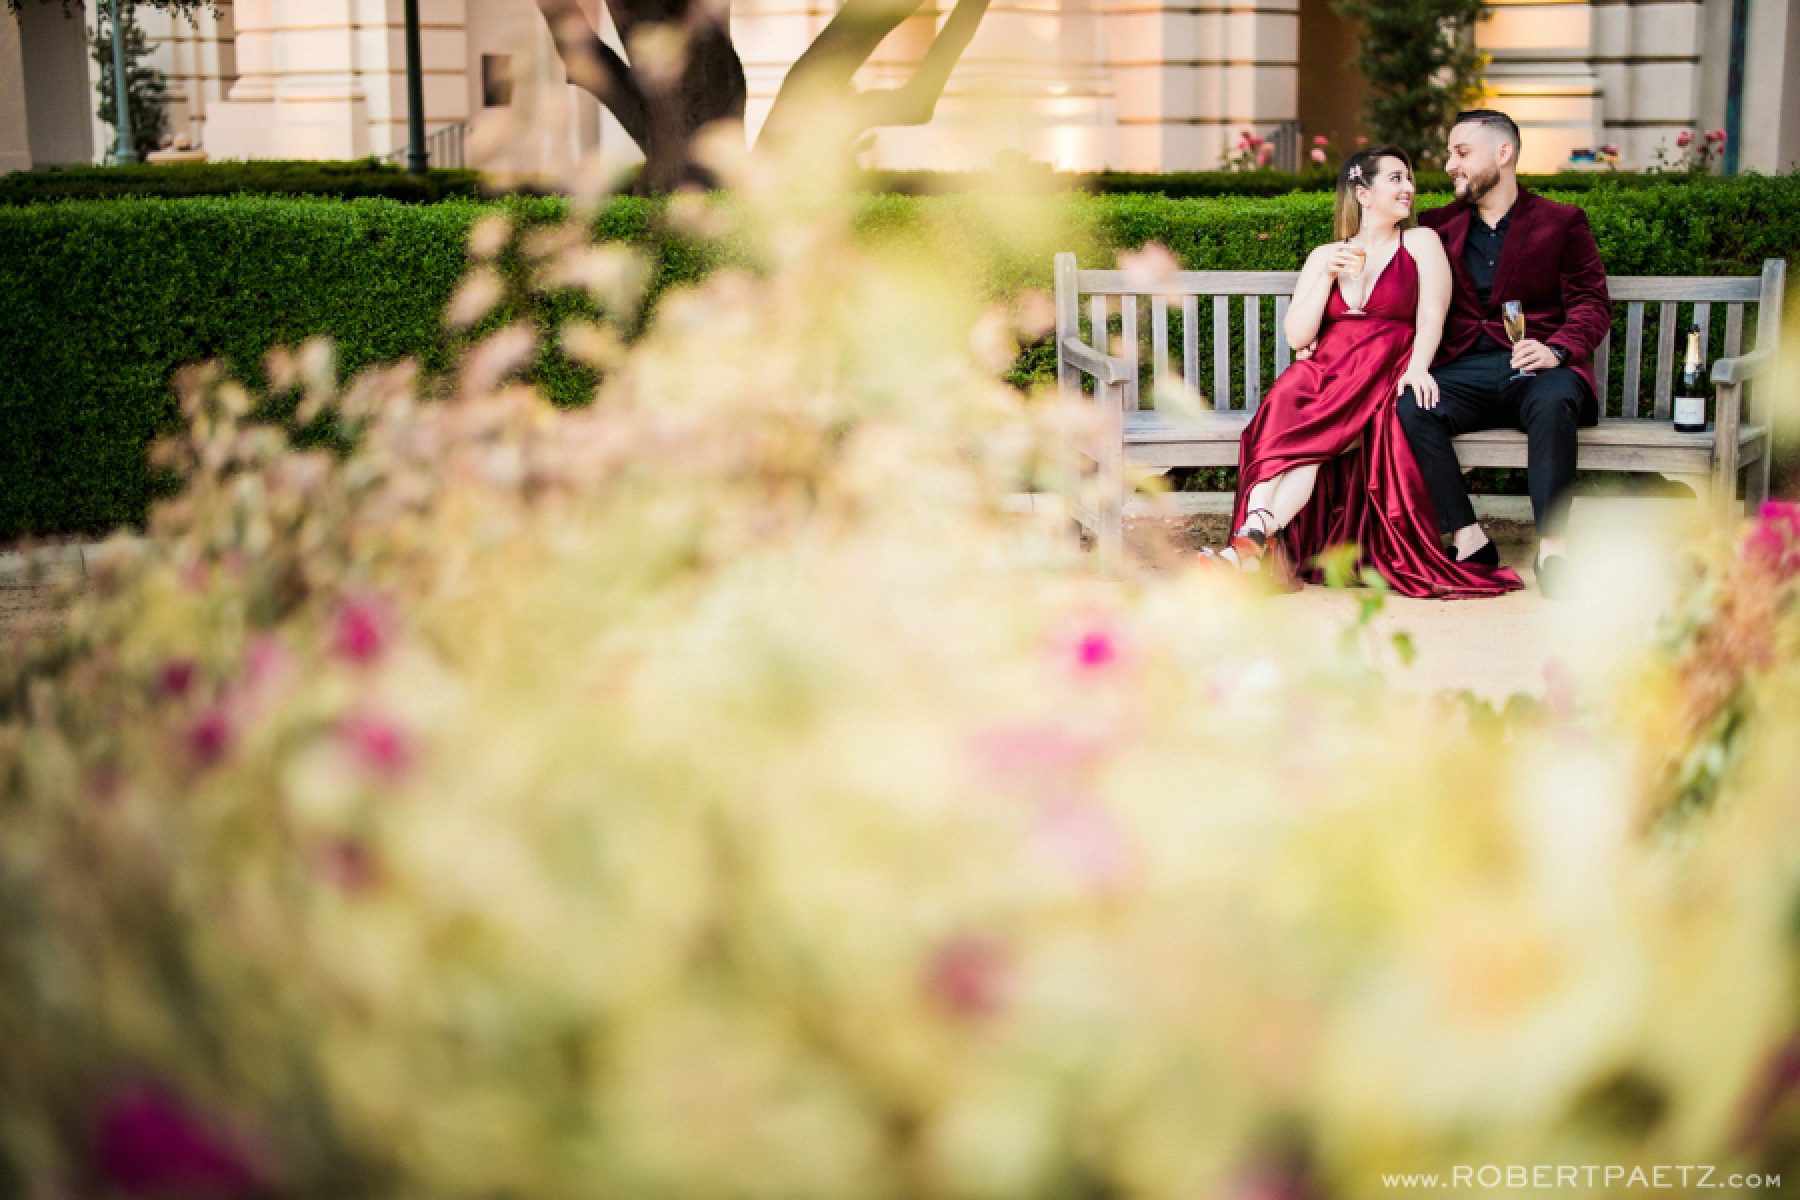 A Pasadena California engagement photography session at Pasadena City Hall, photographed by the west coast destination wedding photographer, Robert Paetz.